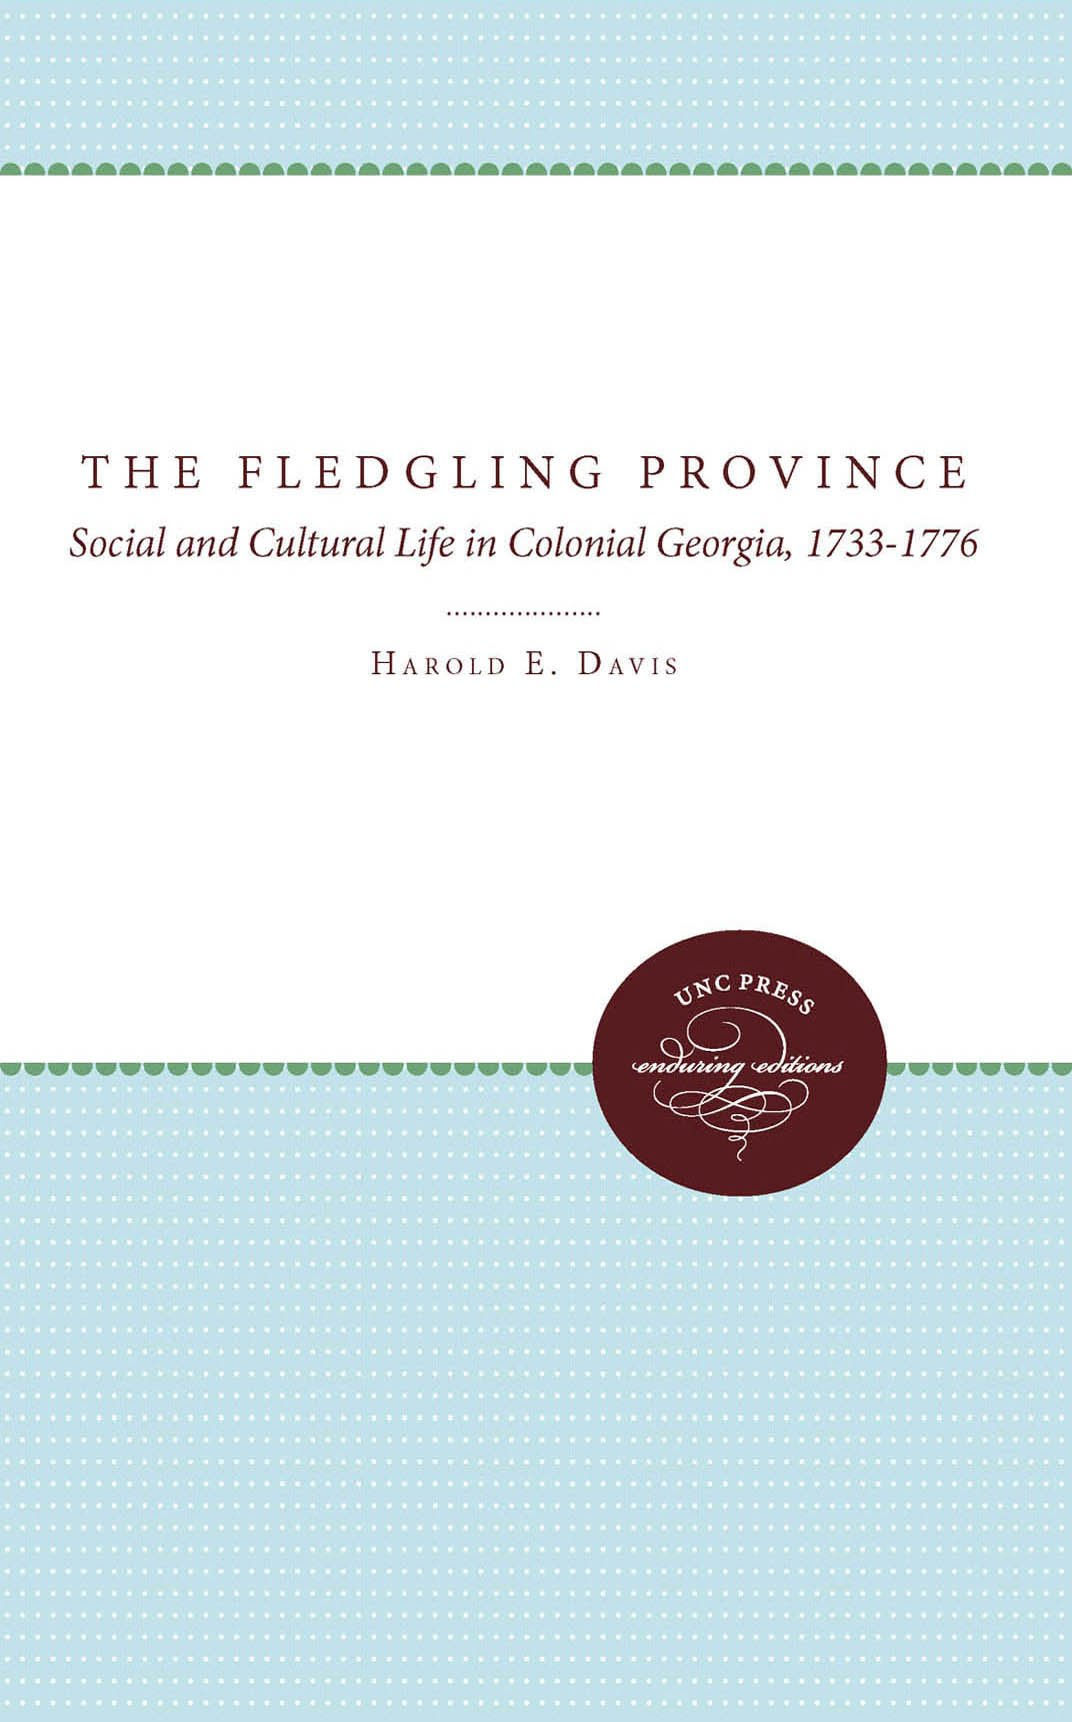 The Fledgling Province: Social and Cultural Life in Colonial Georgia, 1733-1776 (Published by the Omohundro Institute of Early American History and Culture and the University of North Carolina Press)